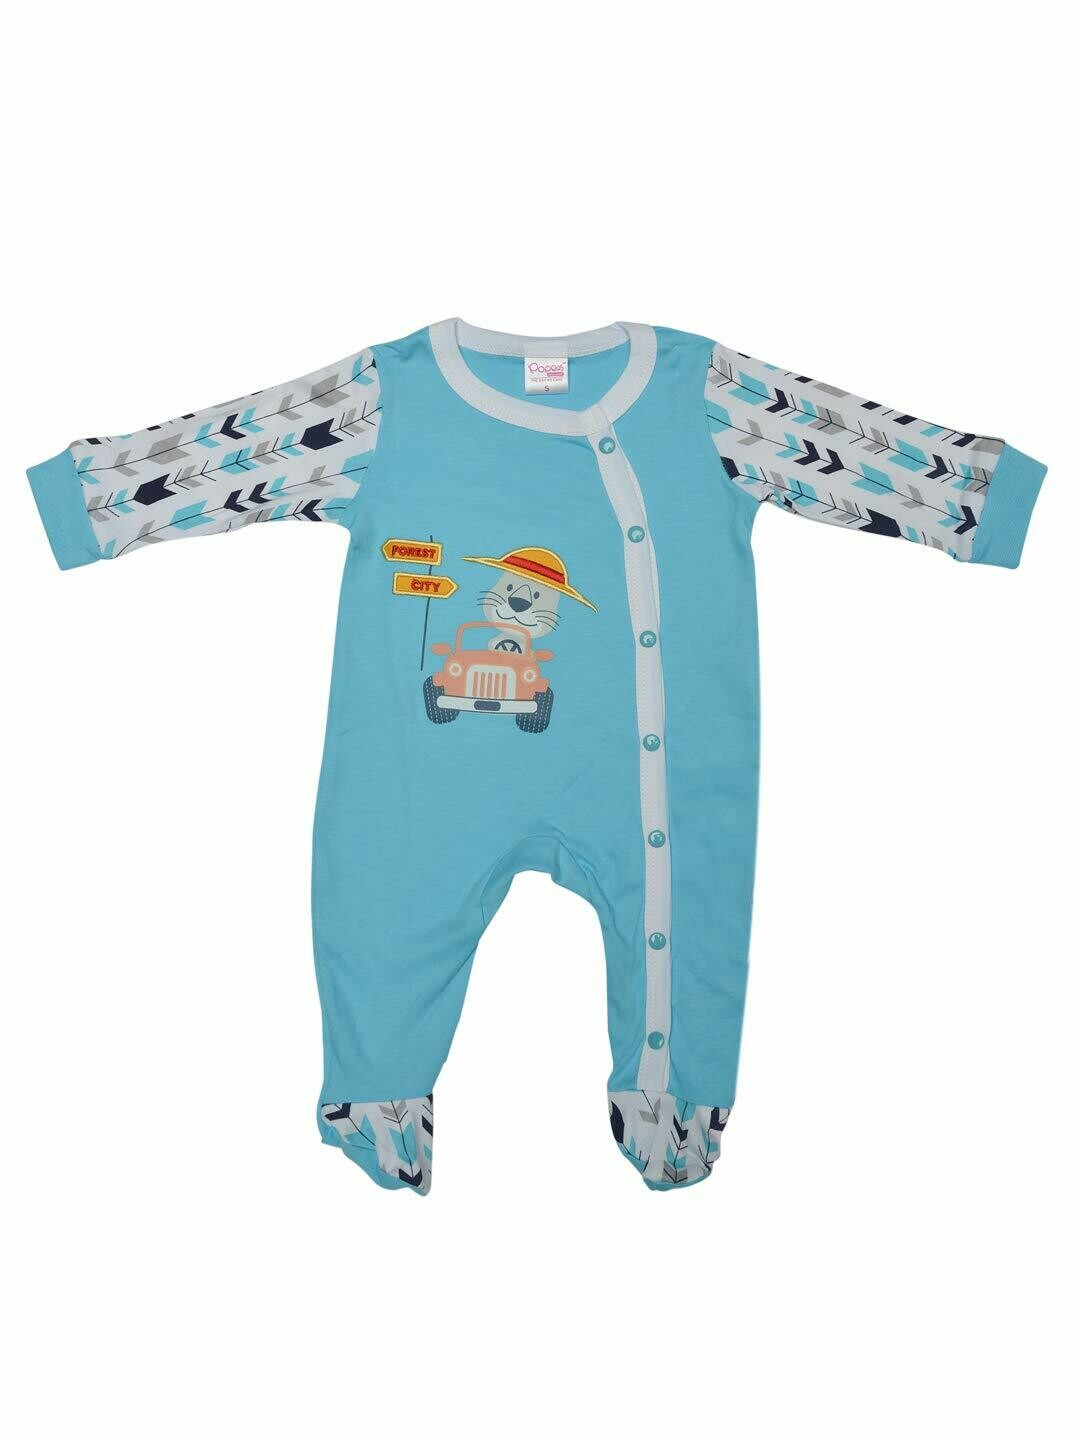 Horus Bachelor Blue Fullsleeves Printed Sleepsuit with Embroidery for Boys & Girls M (6-12 Months)